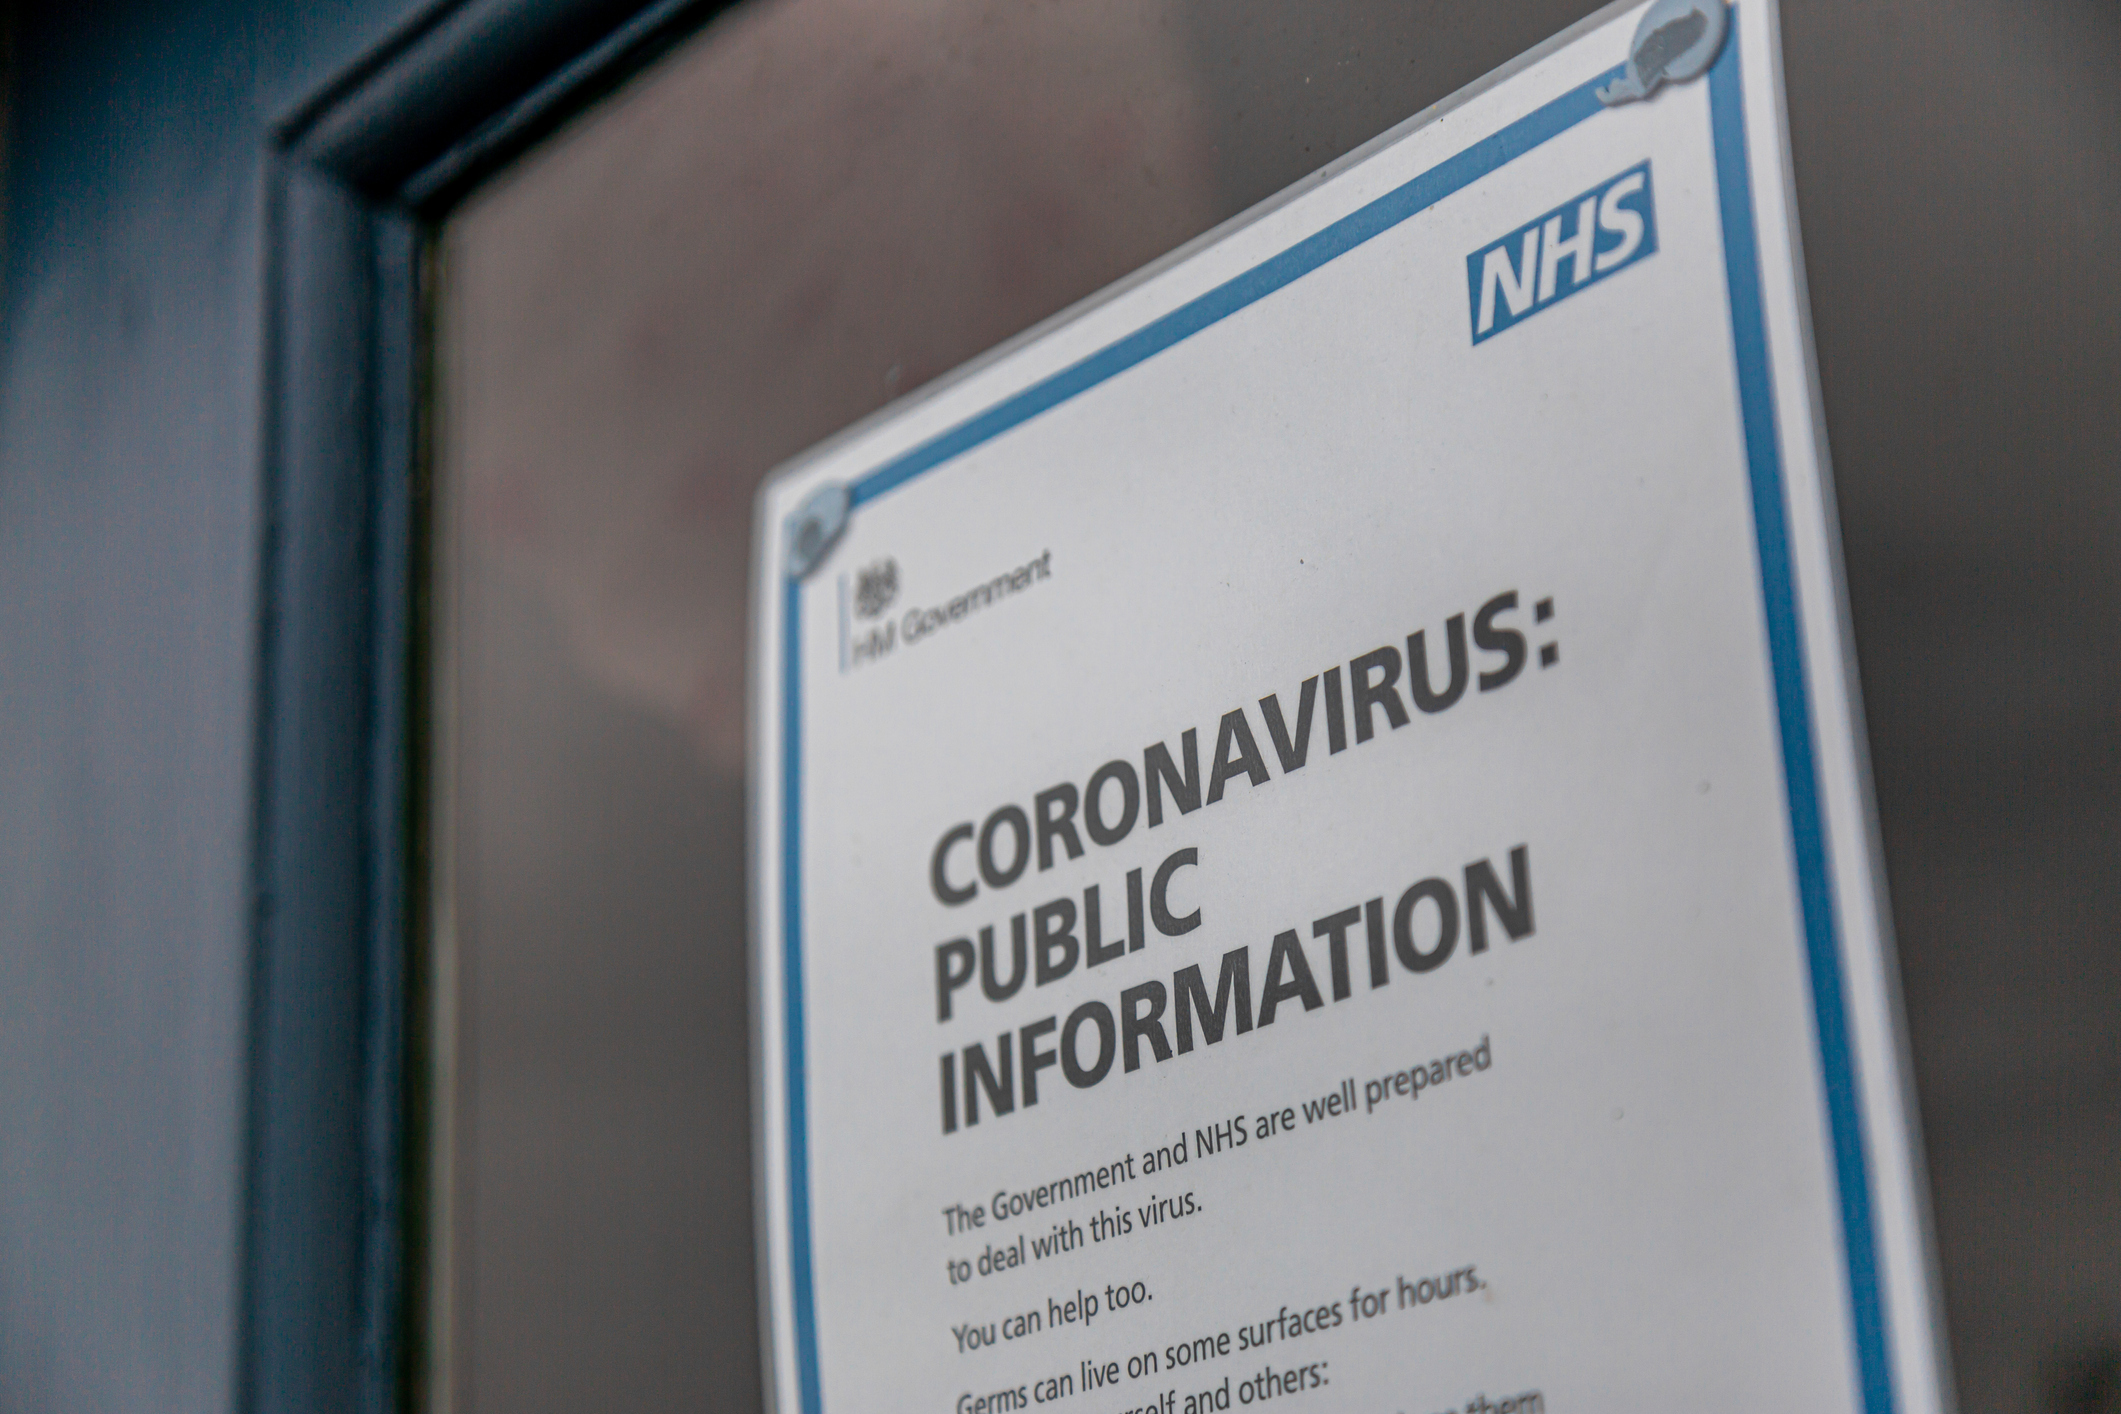 UK Public information poster from the NHS (National Health Service) with advice relating to the COVID-19 Coronavirus